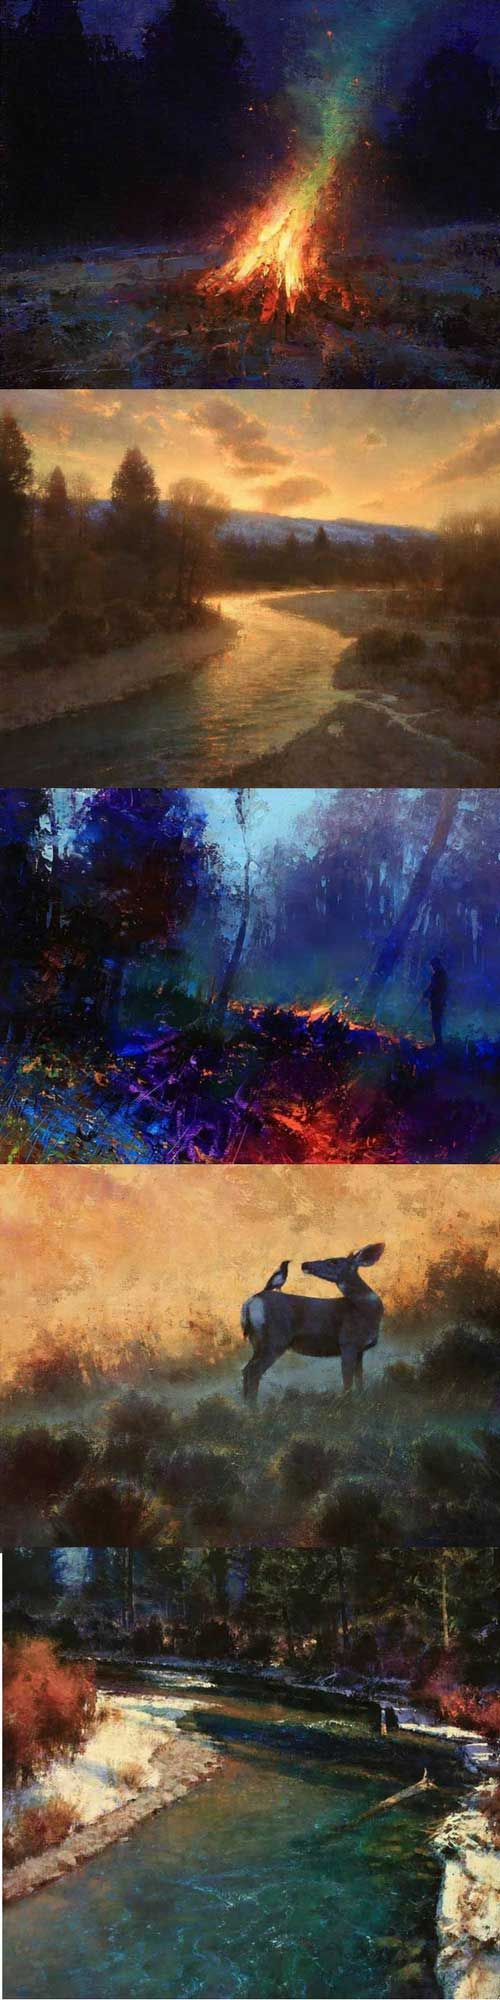 Artist Spotlight Brent Cotton Demonstrates How To Use